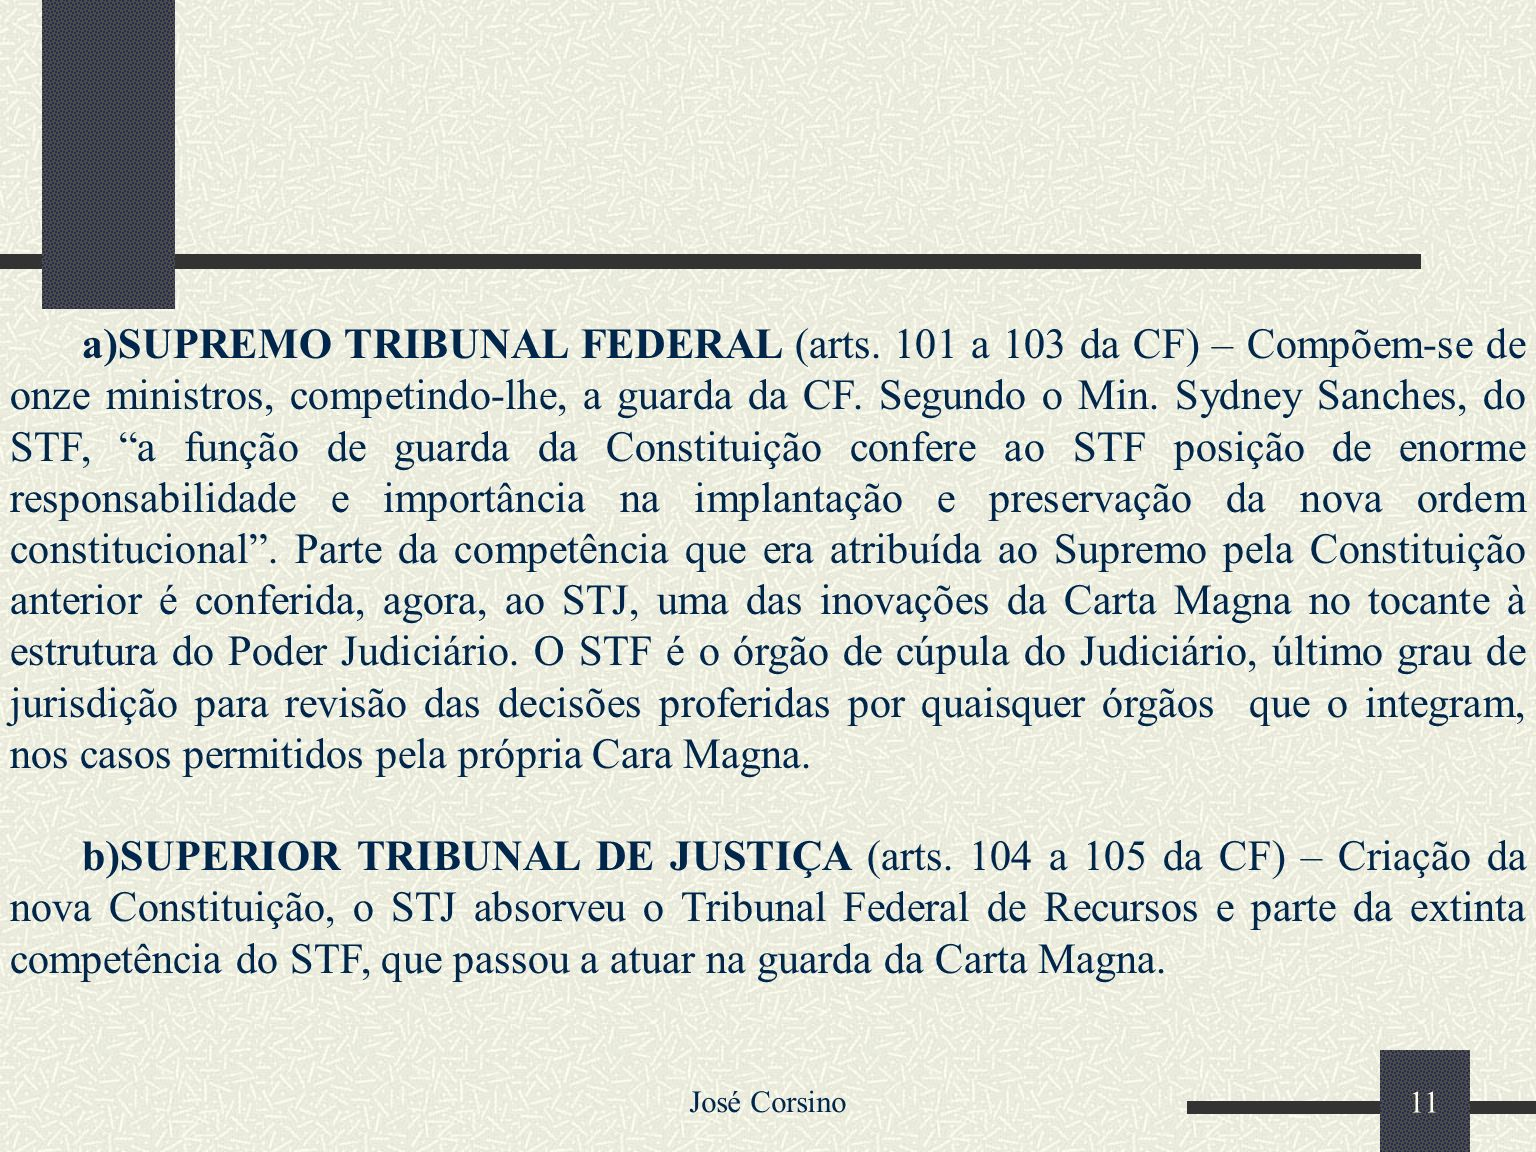 a)SUPREMO TRIBUNAL FEDERAL (arts